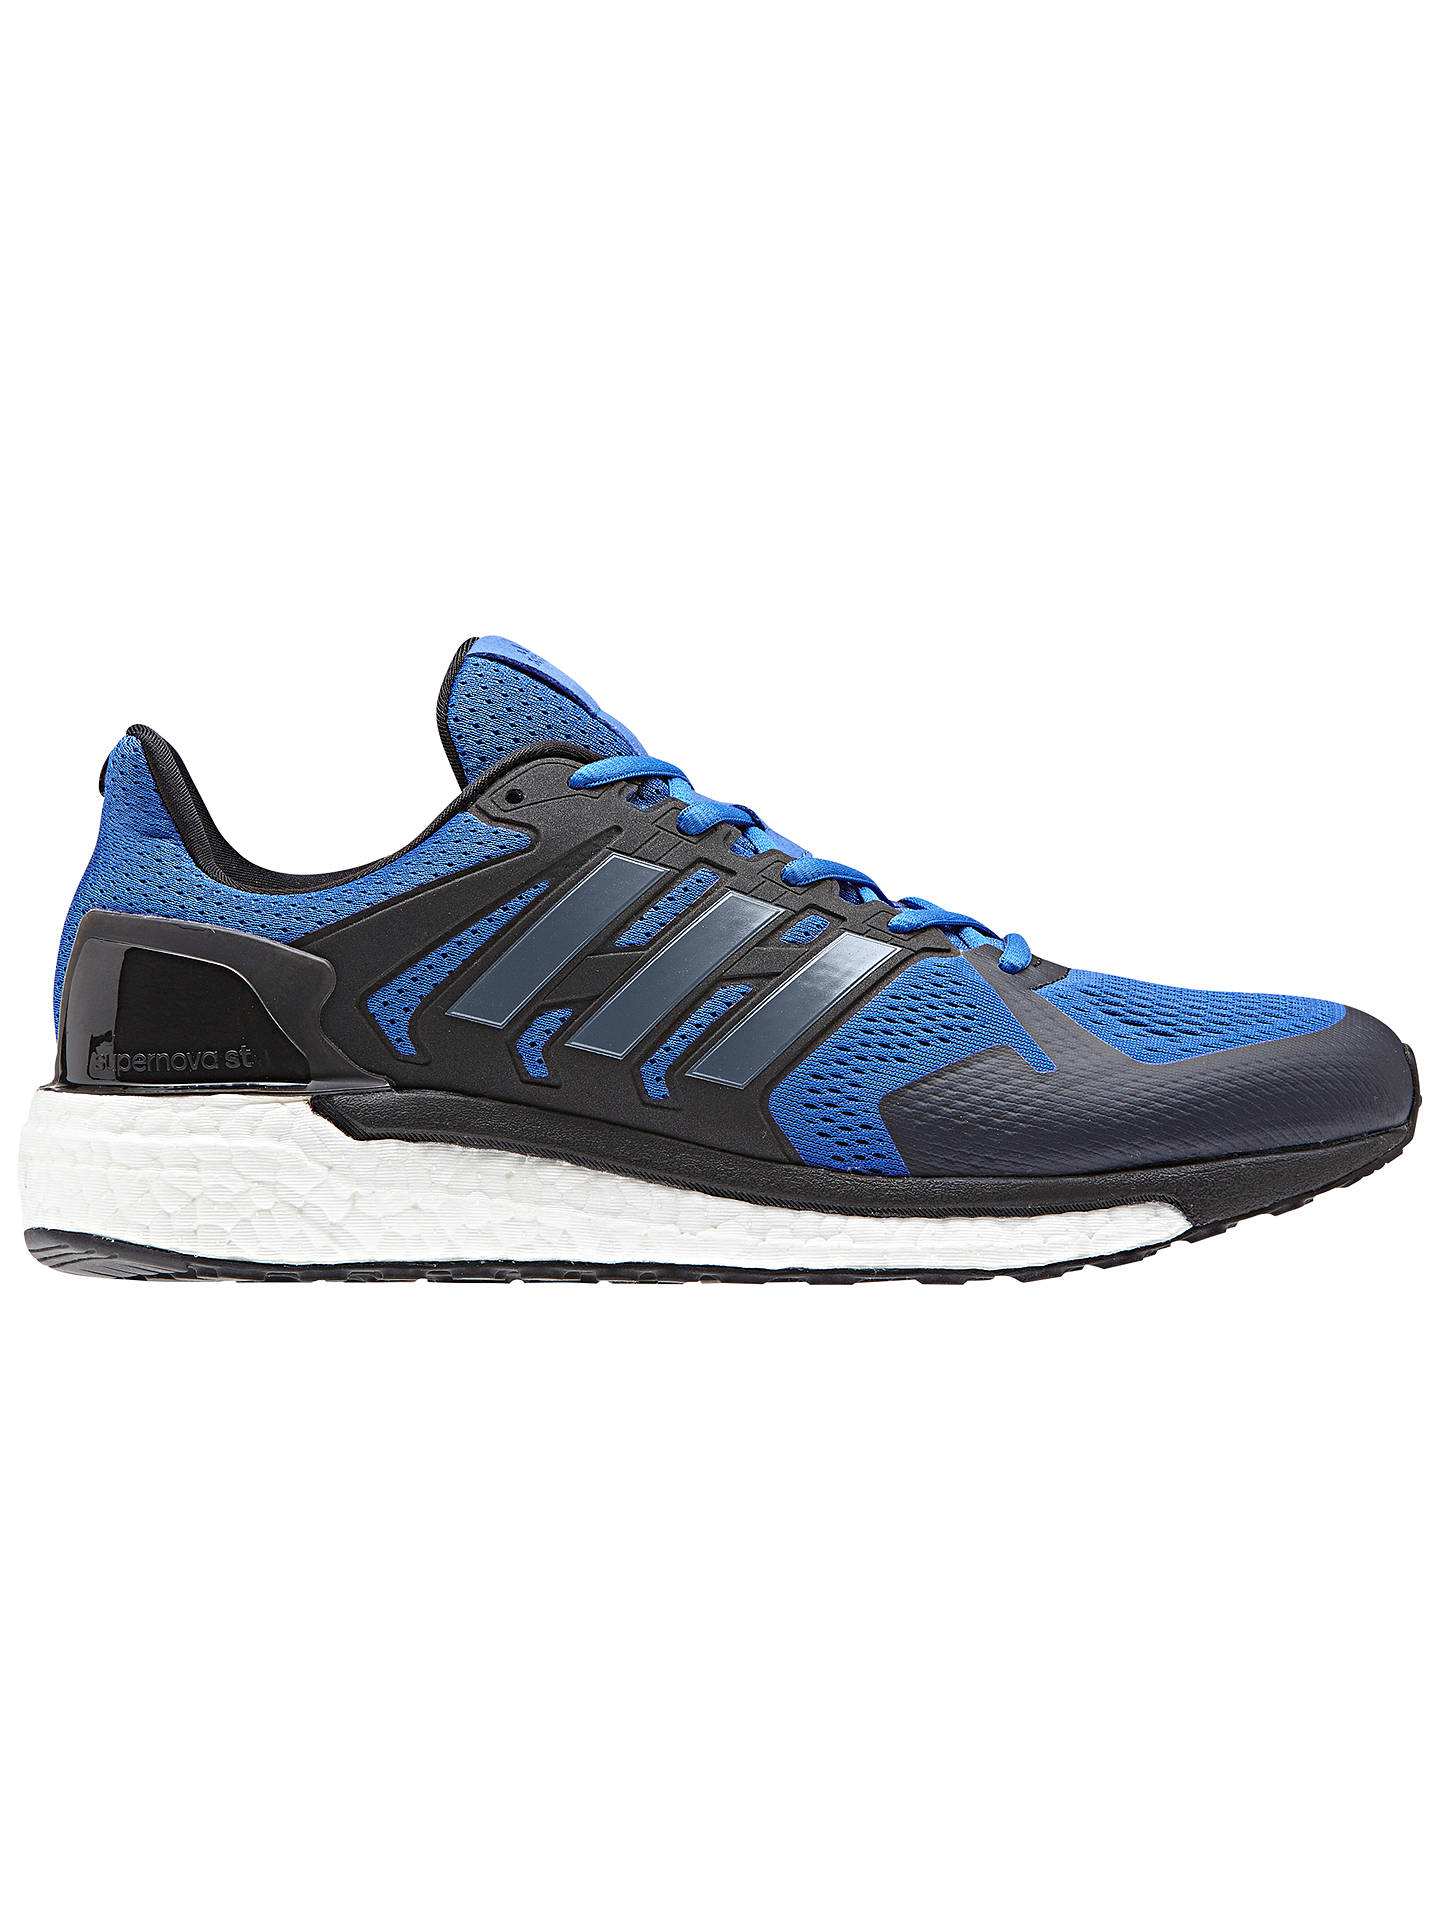 2f29c5e62c9f8 Buy adidas Supernova Stability Men s Running Shoes